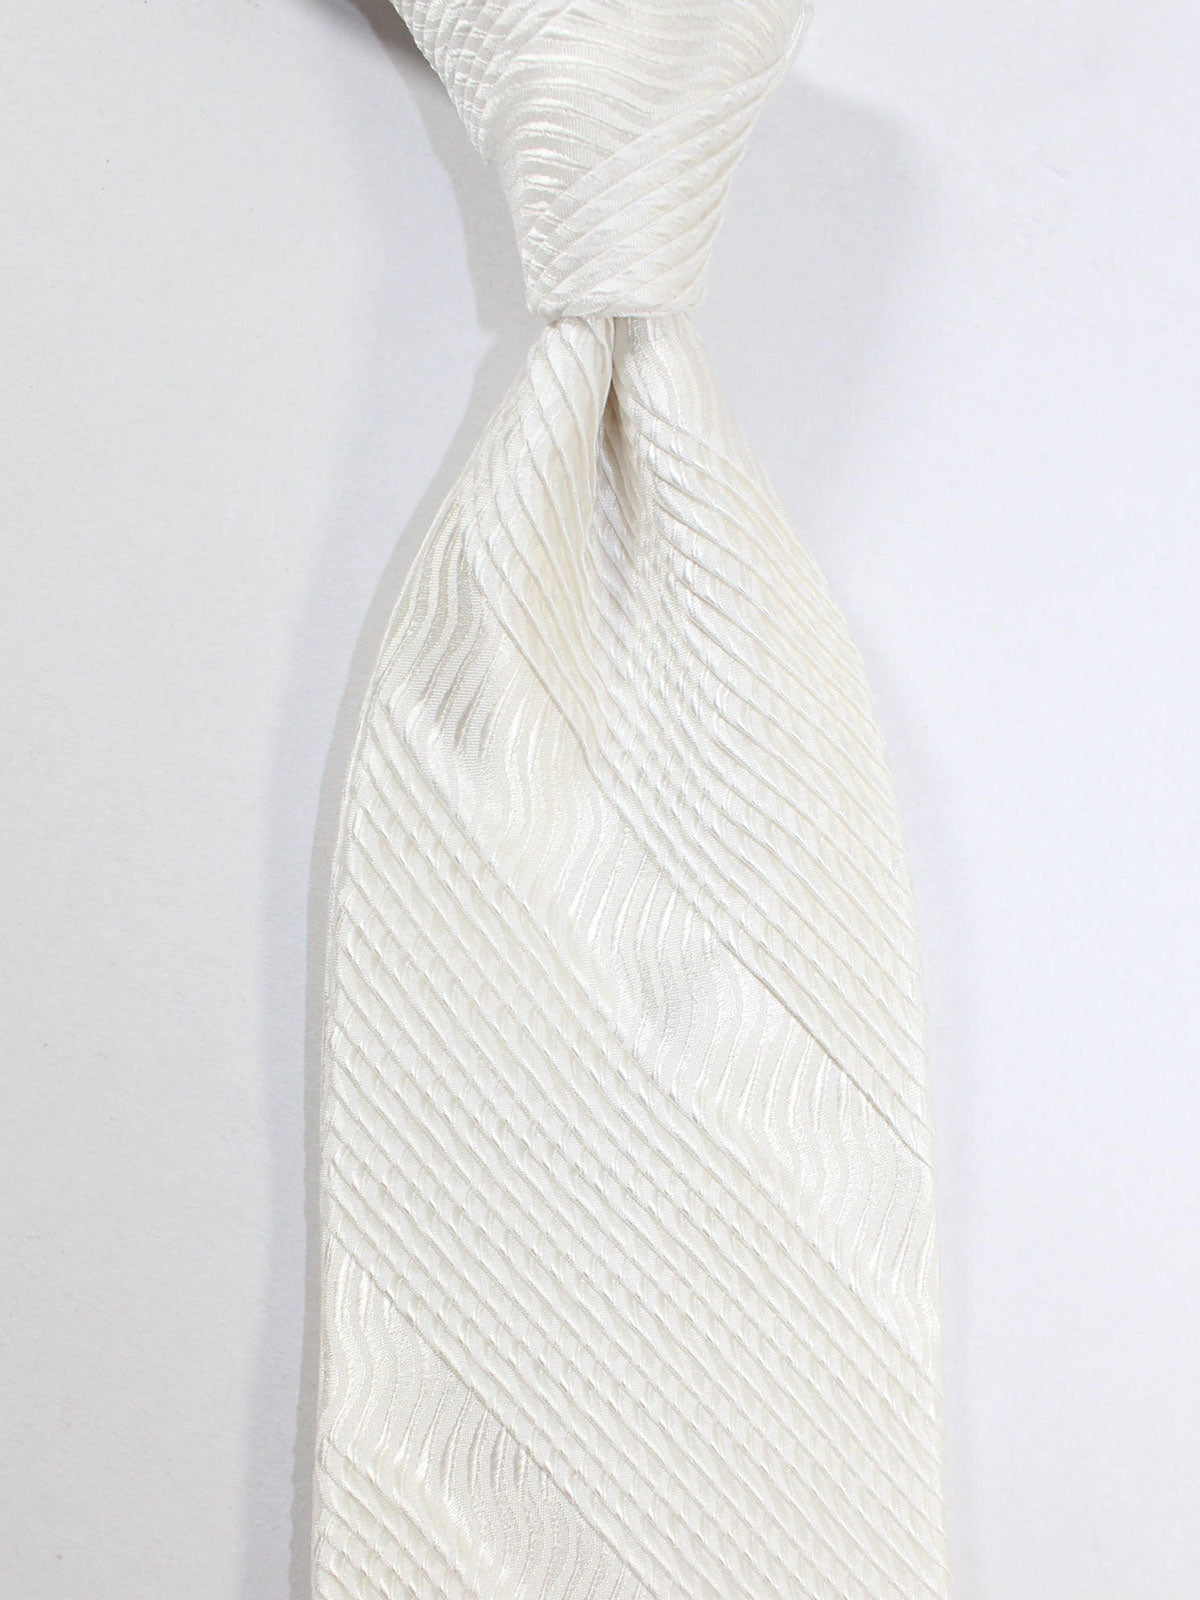 Stefano Ricci Pleated Silk Tie White Tonal Swirl Design